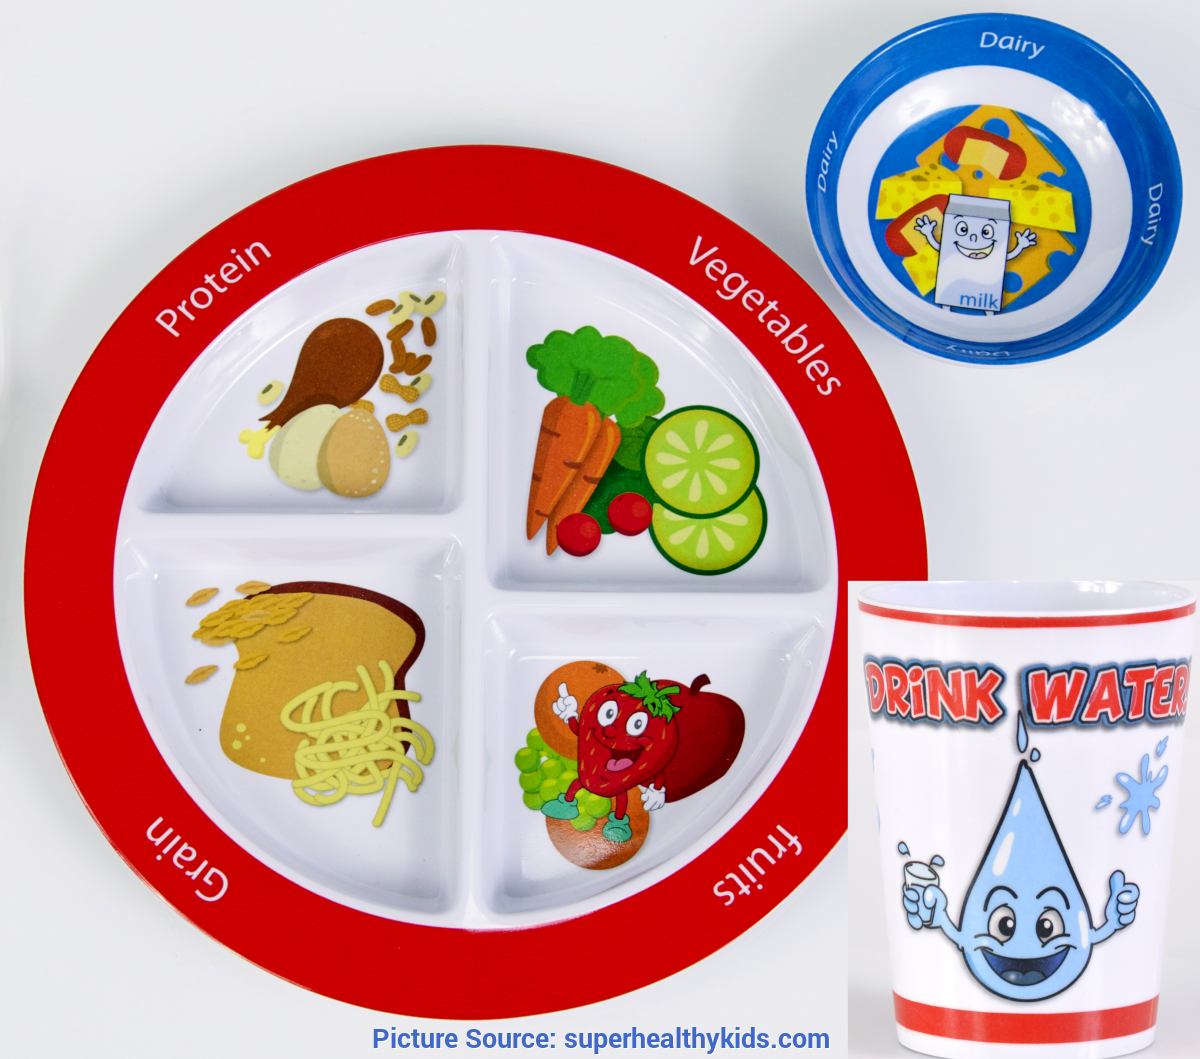 Complex 2Nd Grade Health Lesson Plans 8 Myplate Lesson Ideas For K-2Nd Grade | Healthy Ideas For